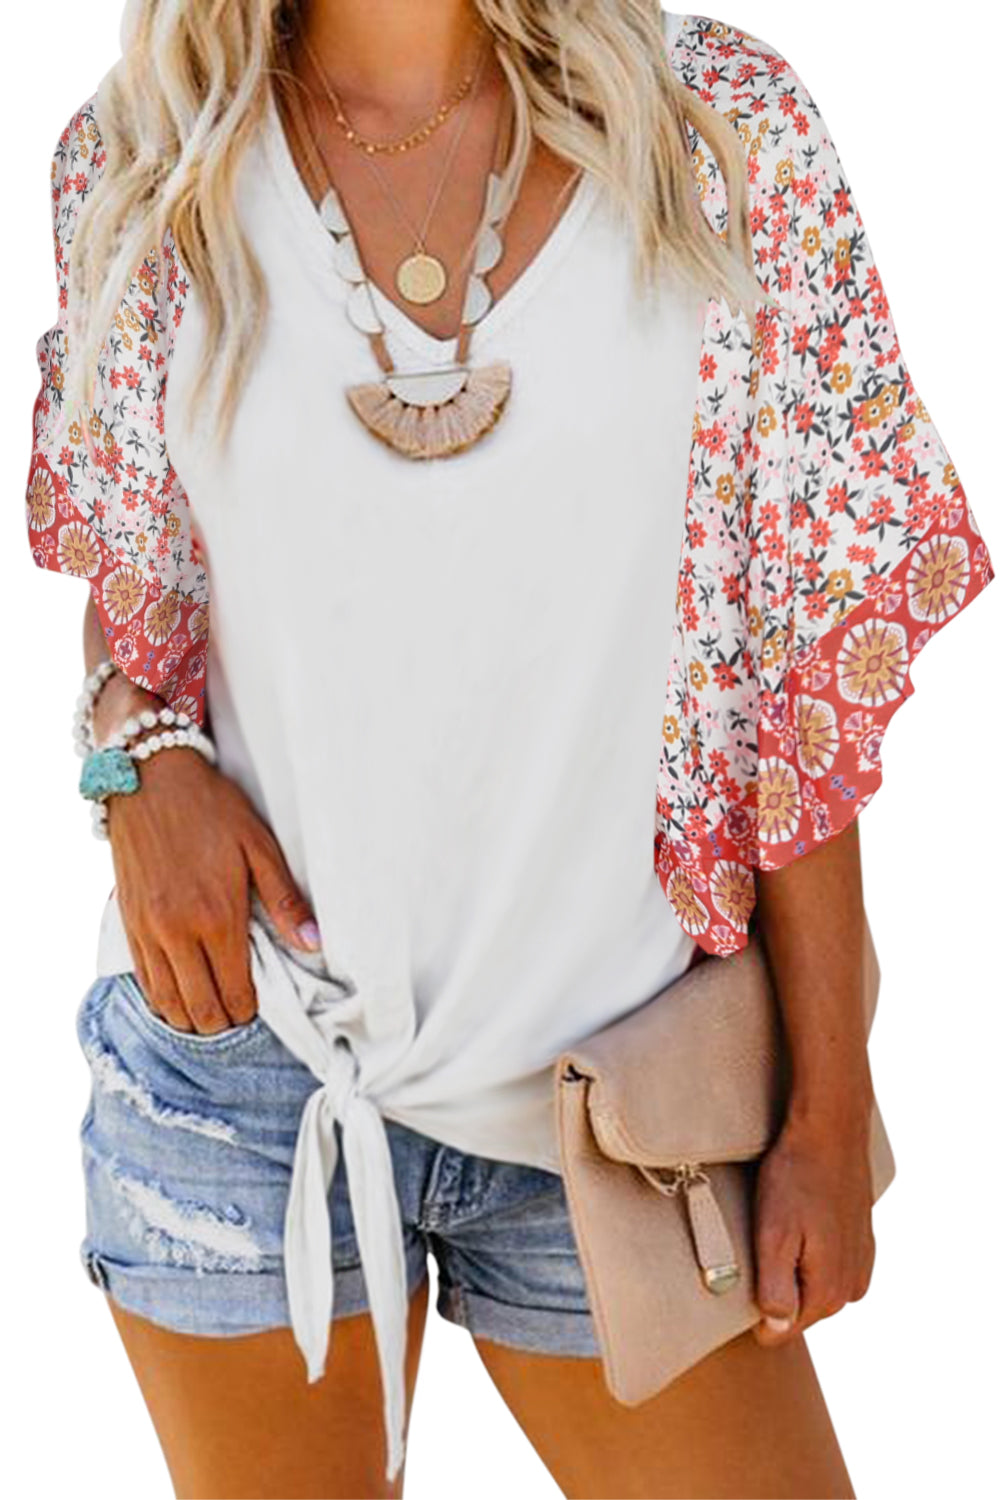 White Fashion Casual Short Sleeved Printed Top T-Shirt